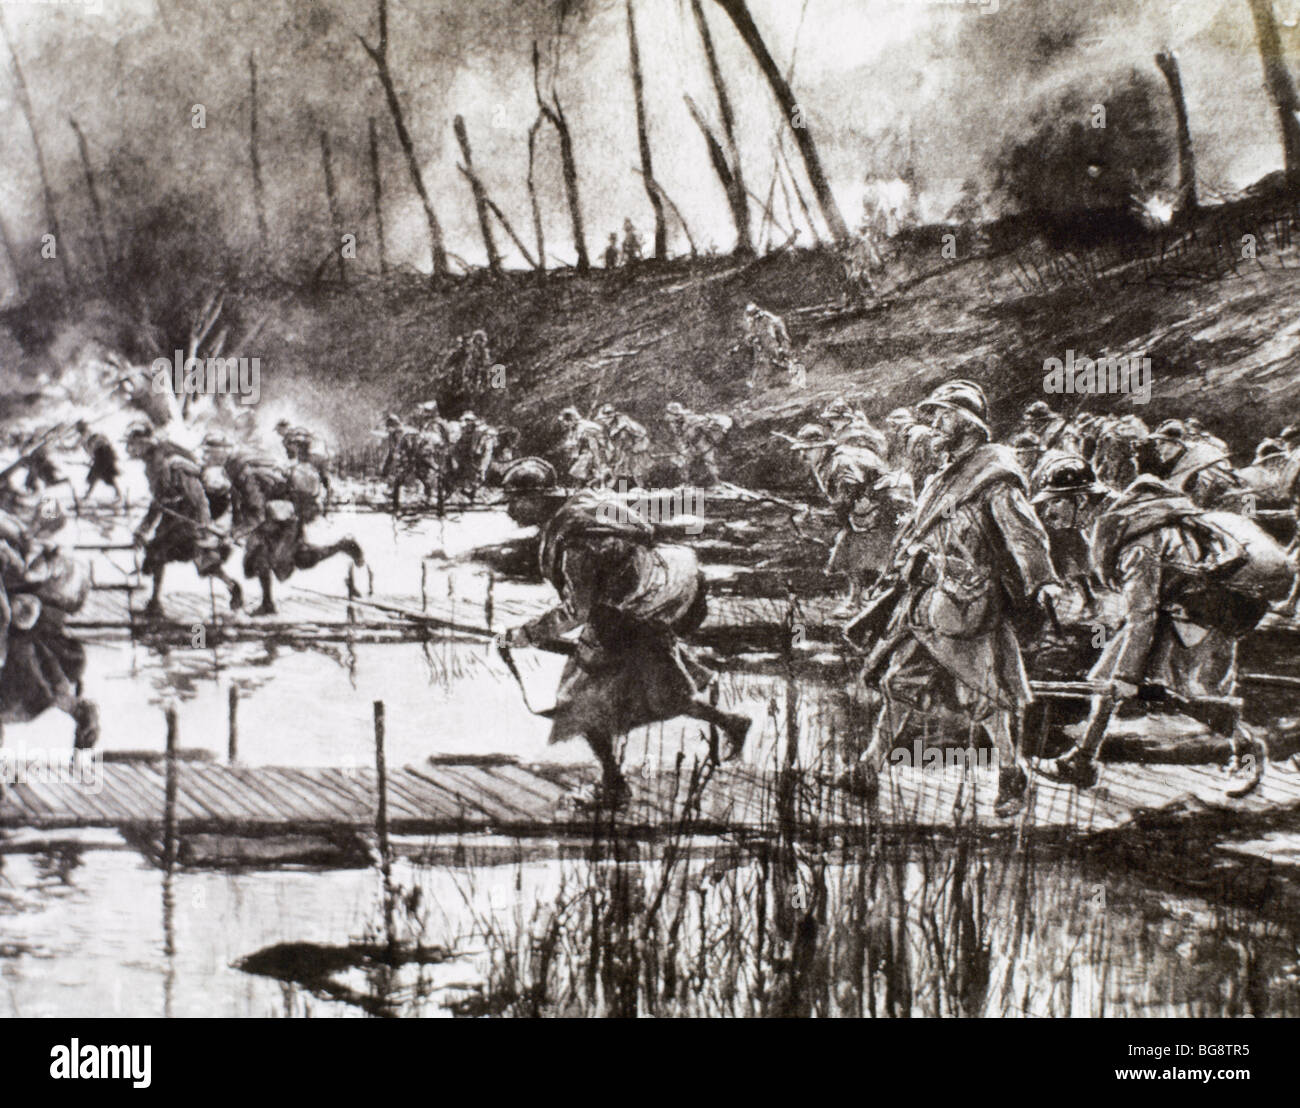 FIRST WORLD WAR (1914-1918). French army crosses the river Isere on improvised gateways under enemy fire (August - Stock Image